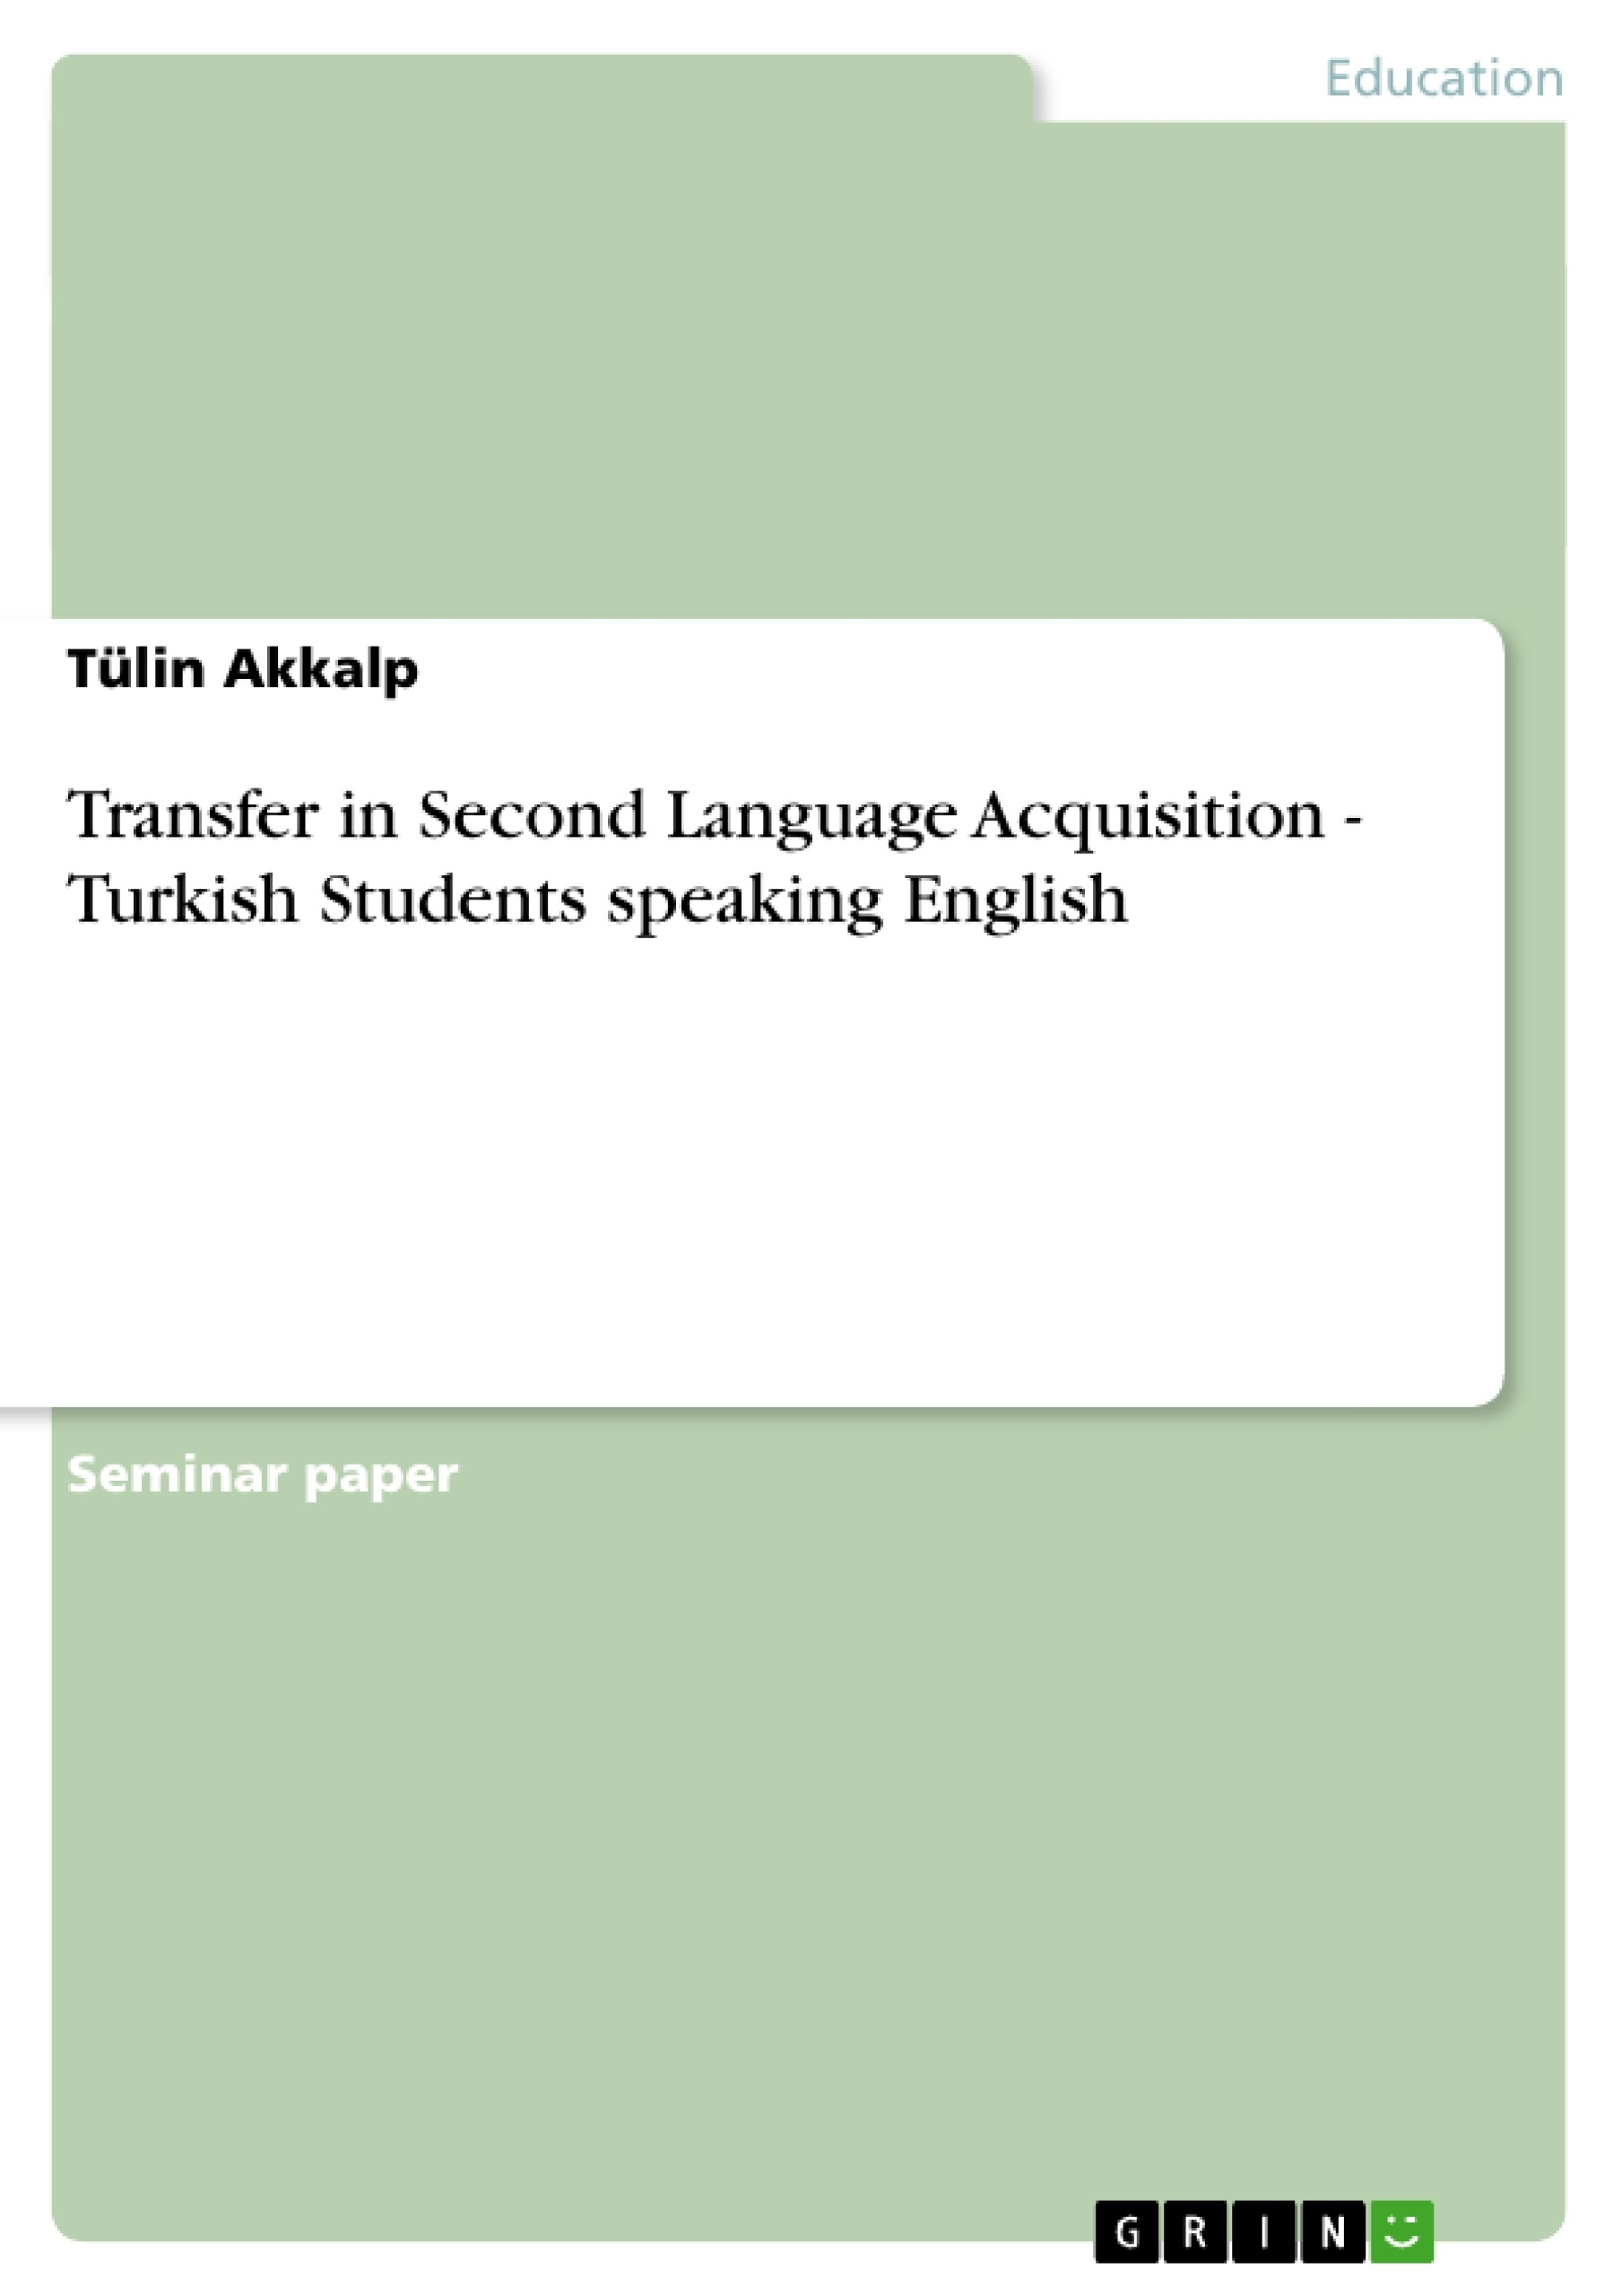 Title: Transfer in Second Language Acquisition - Turkish Students speaking English